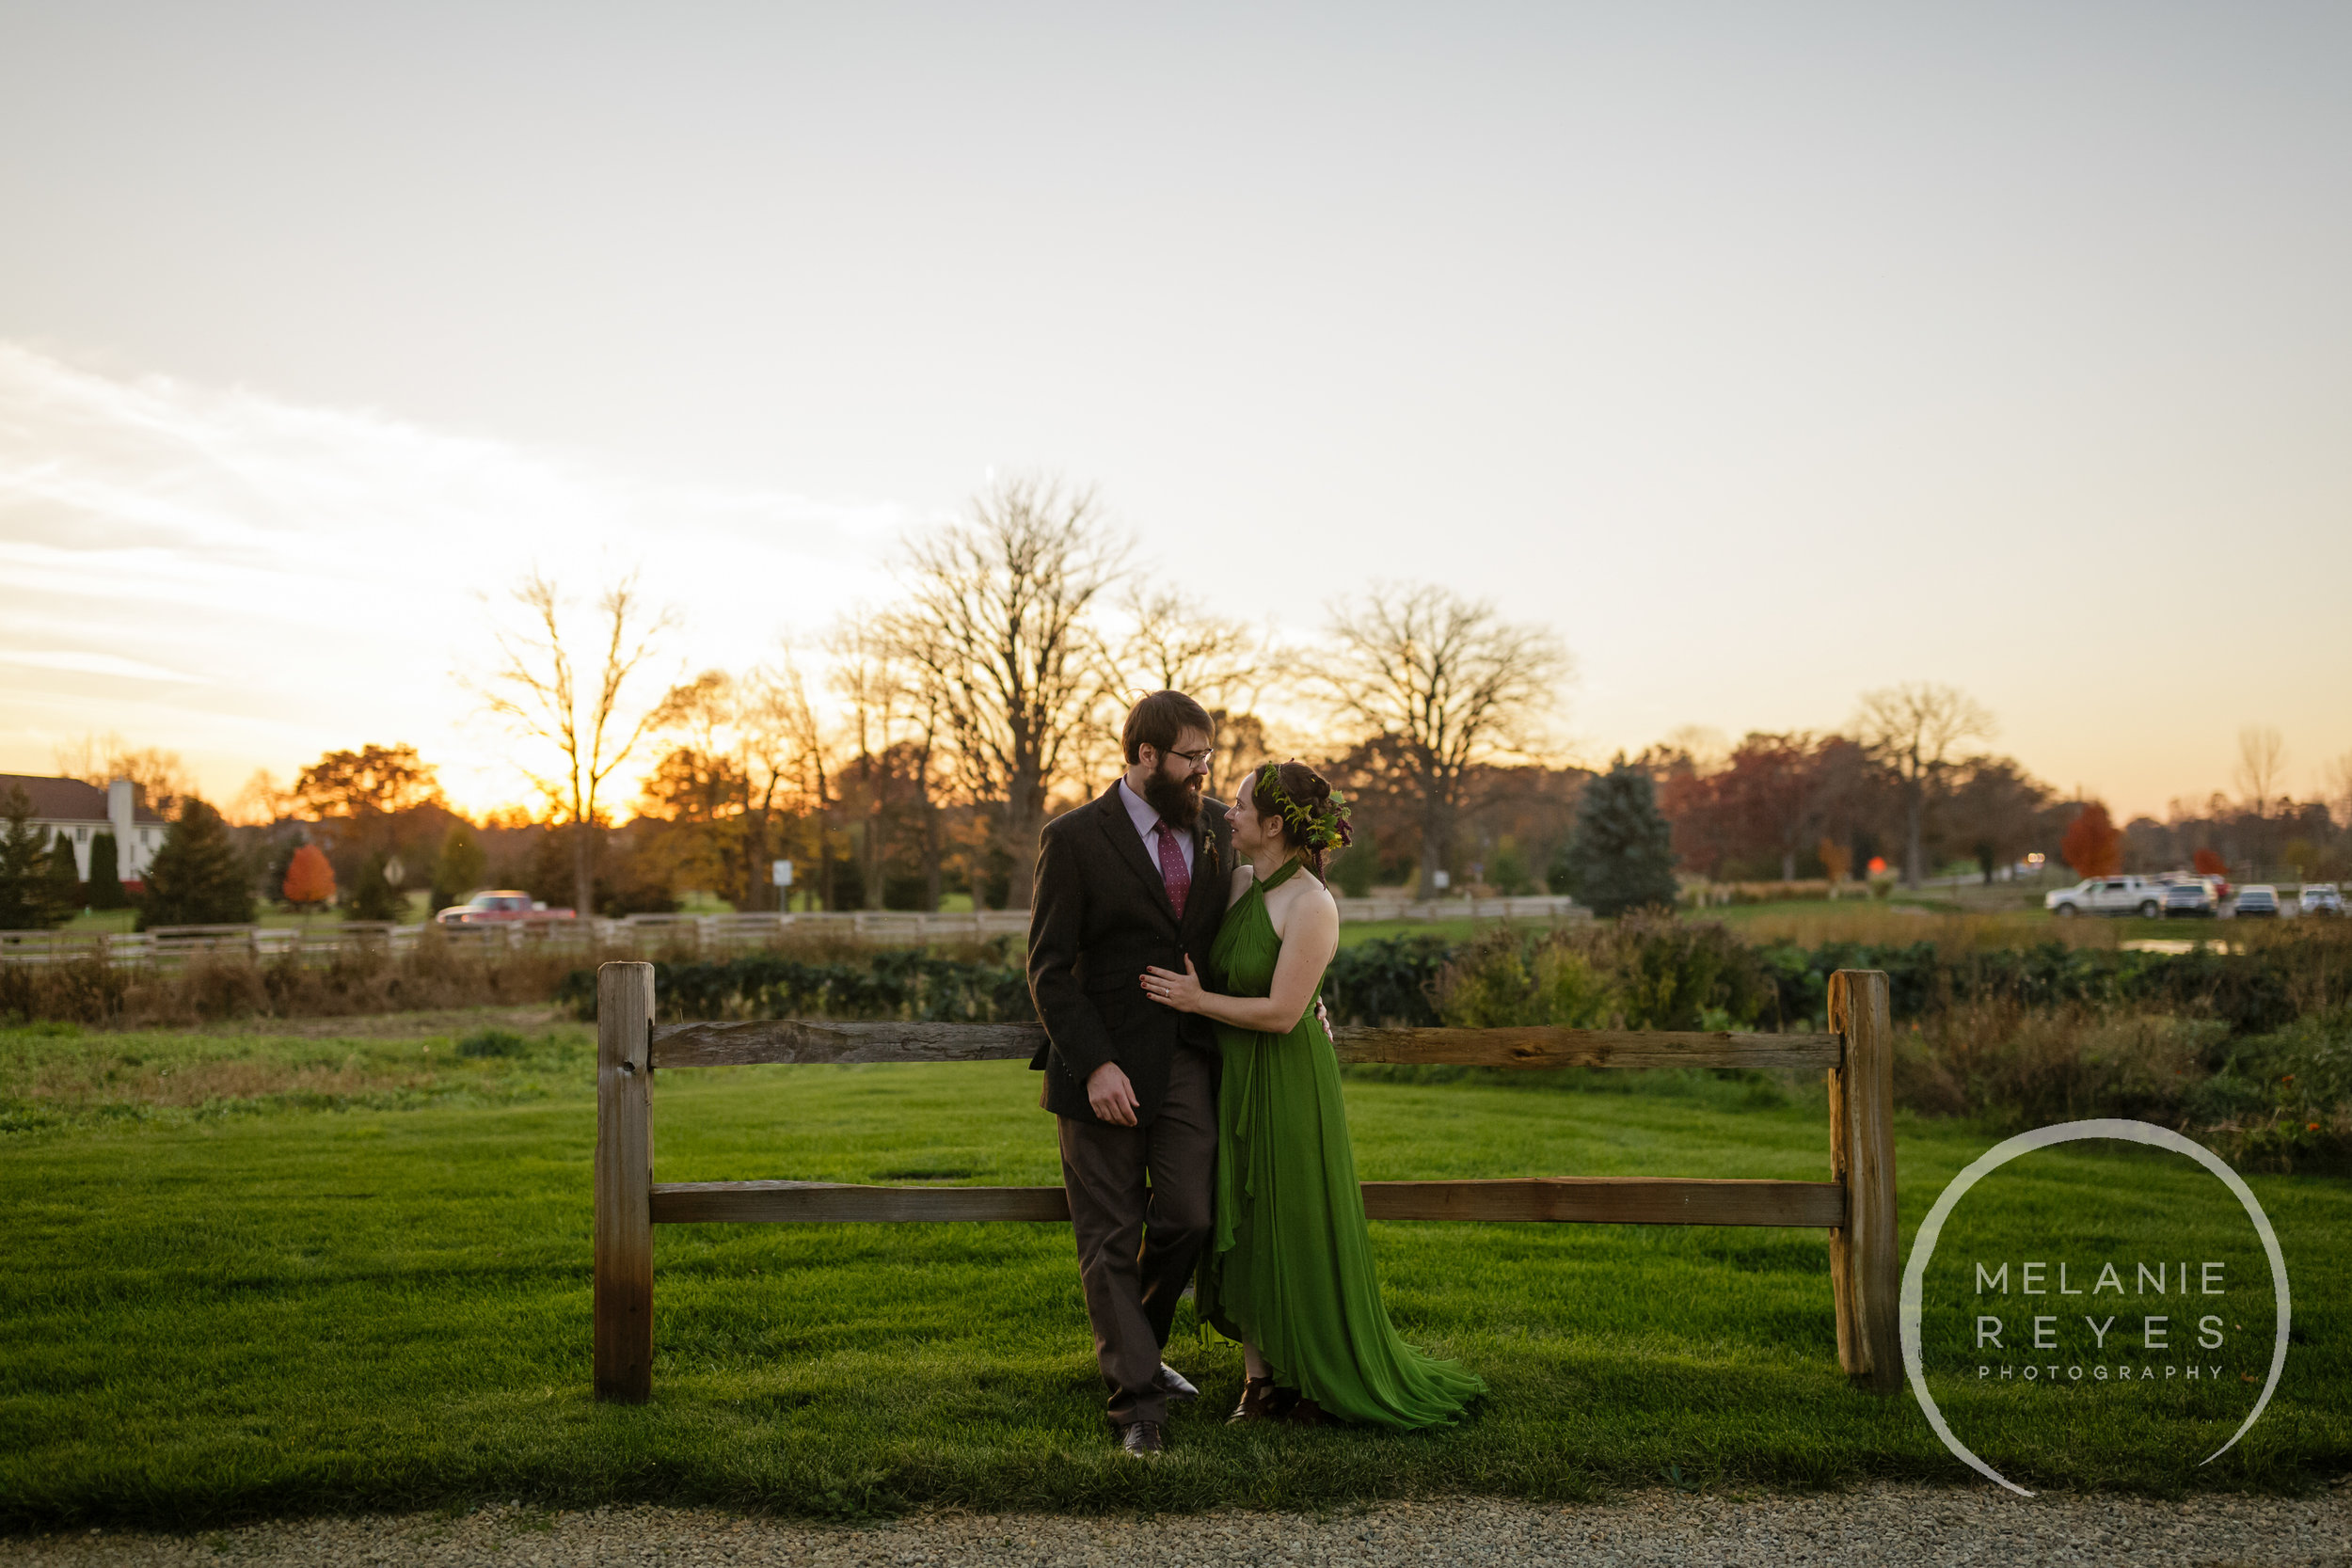 zingermans_cornman_farms_wedding_melanie_reyes_photography_048.JPG